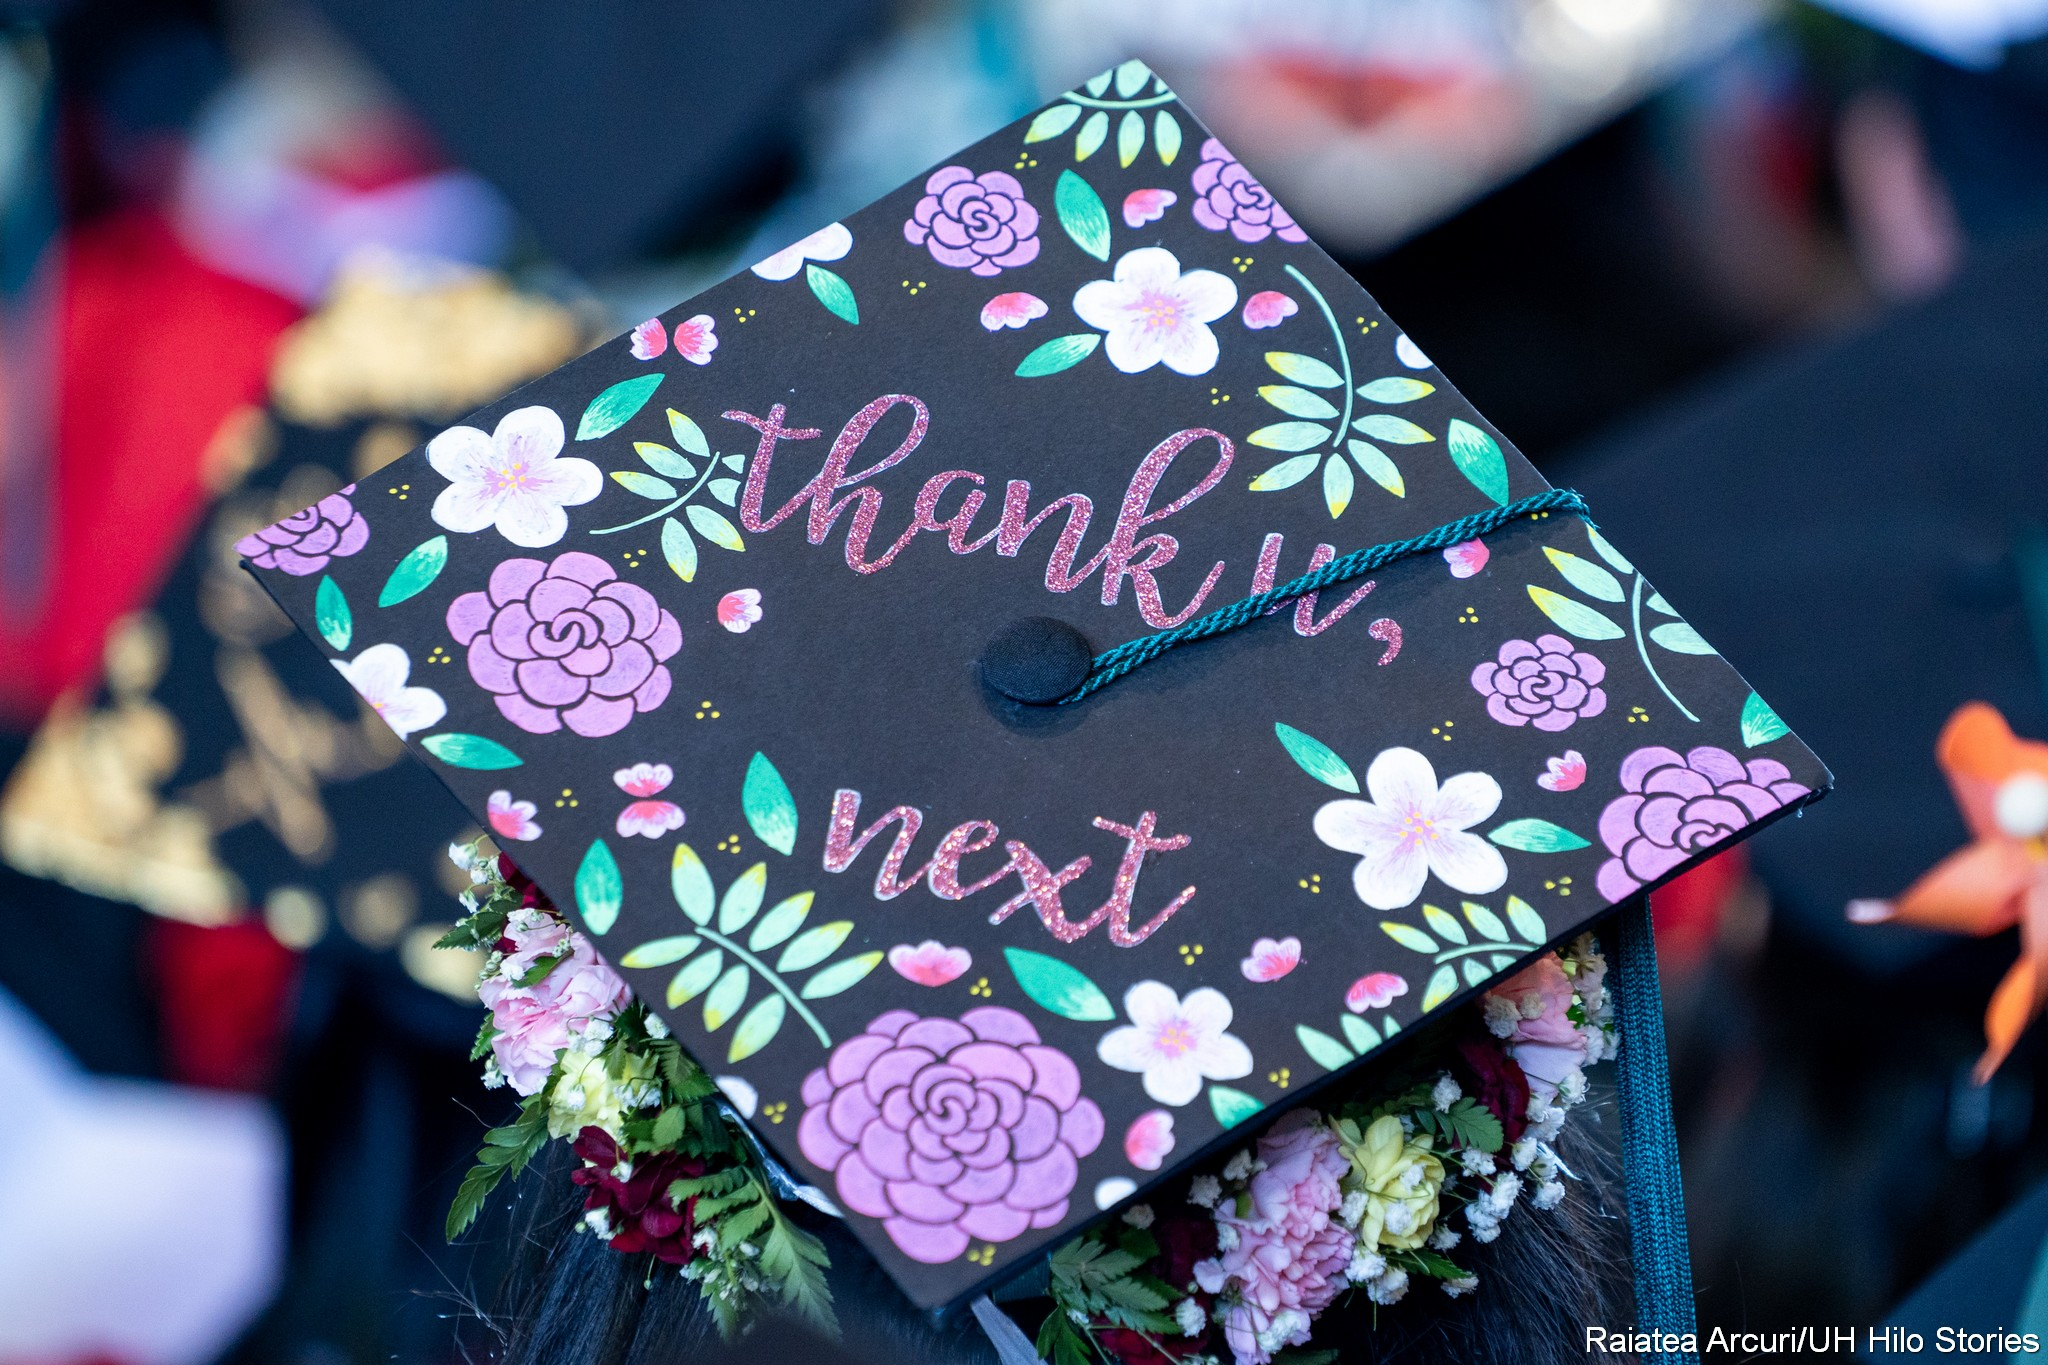 Mortarboard with words: Thank u next